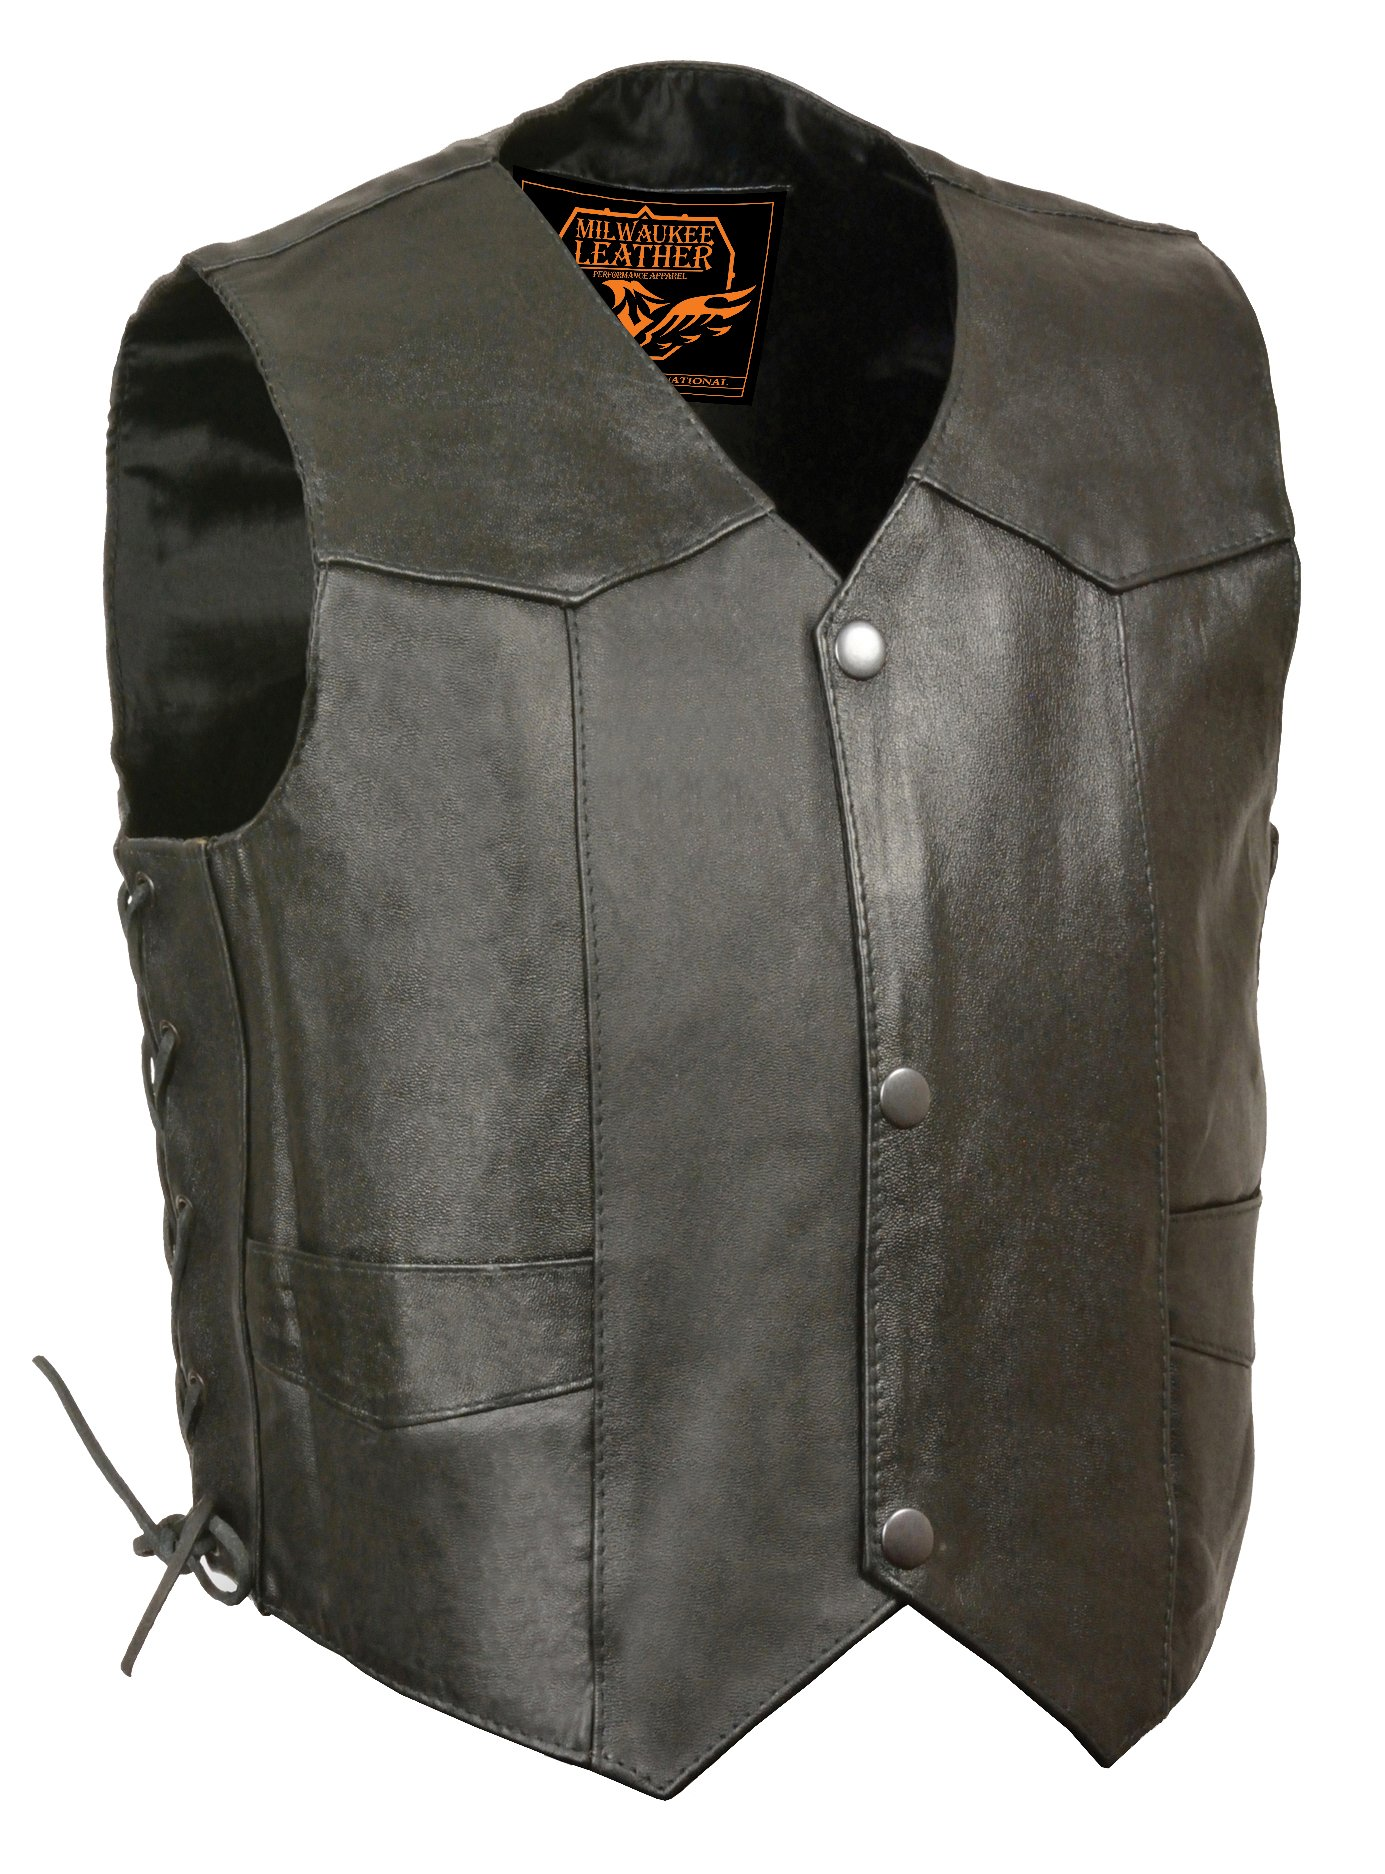 Milwaukee Leather SH2011L-BLK-XS Kids' Vest with Side Laces (Black, X-Small)